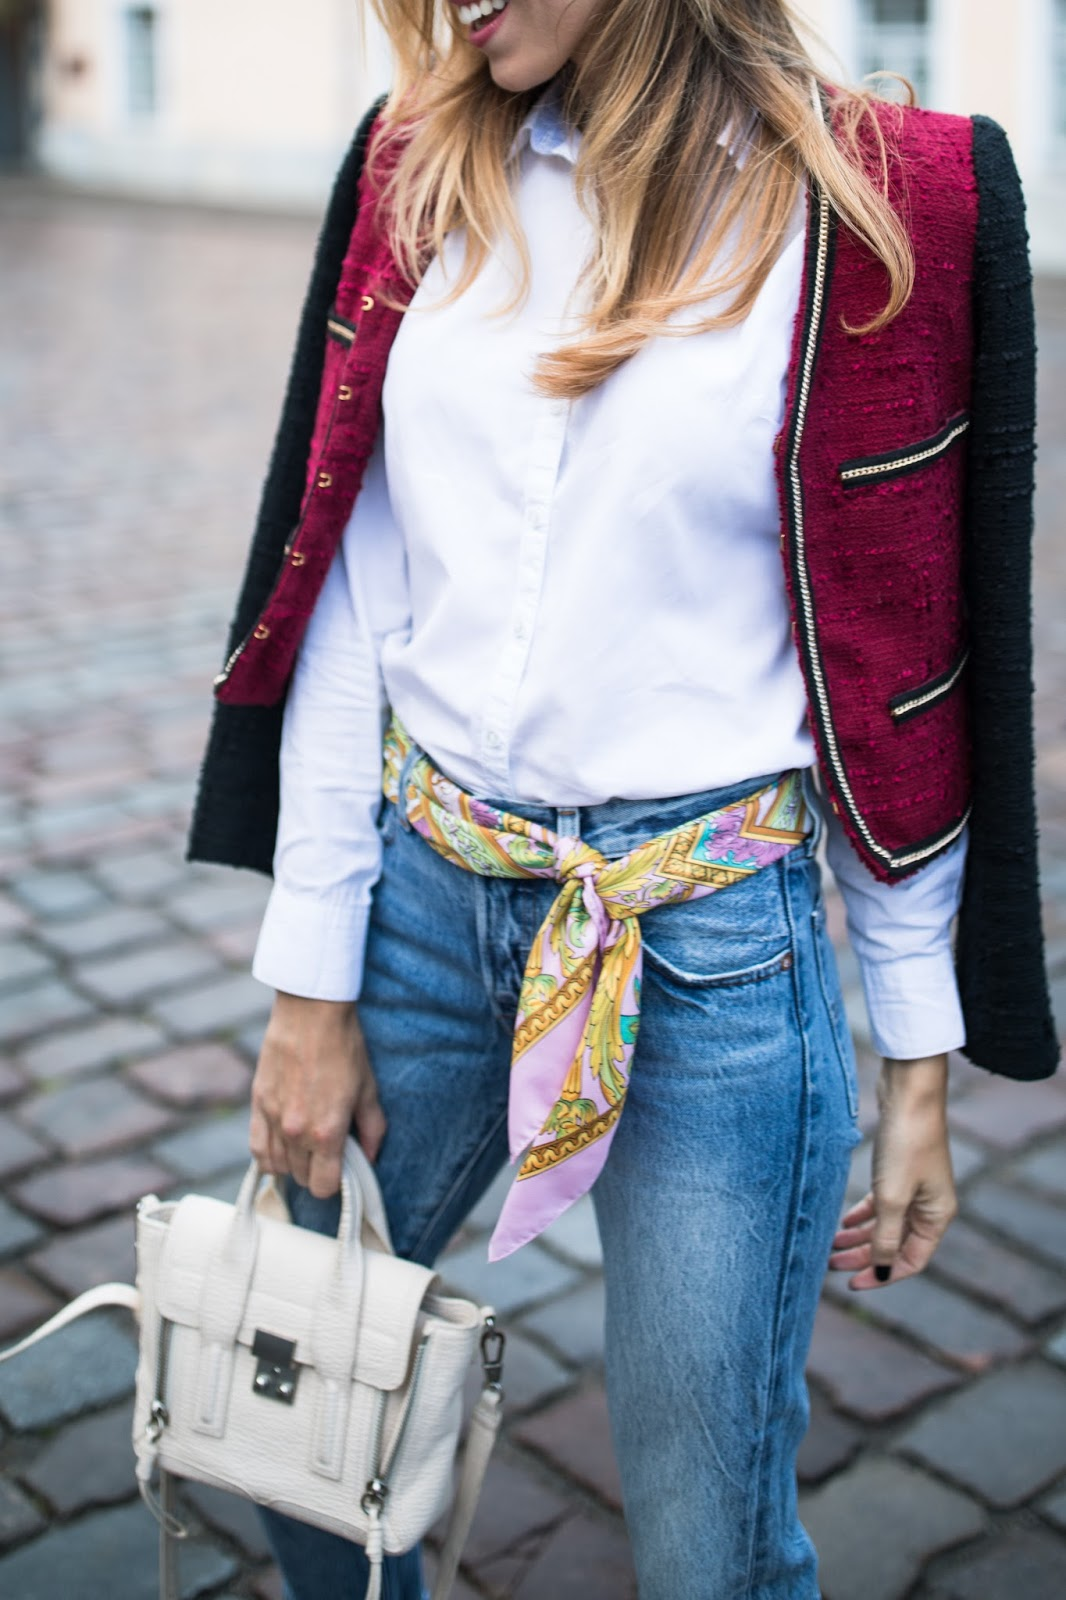 scarf as belt over jeans trend